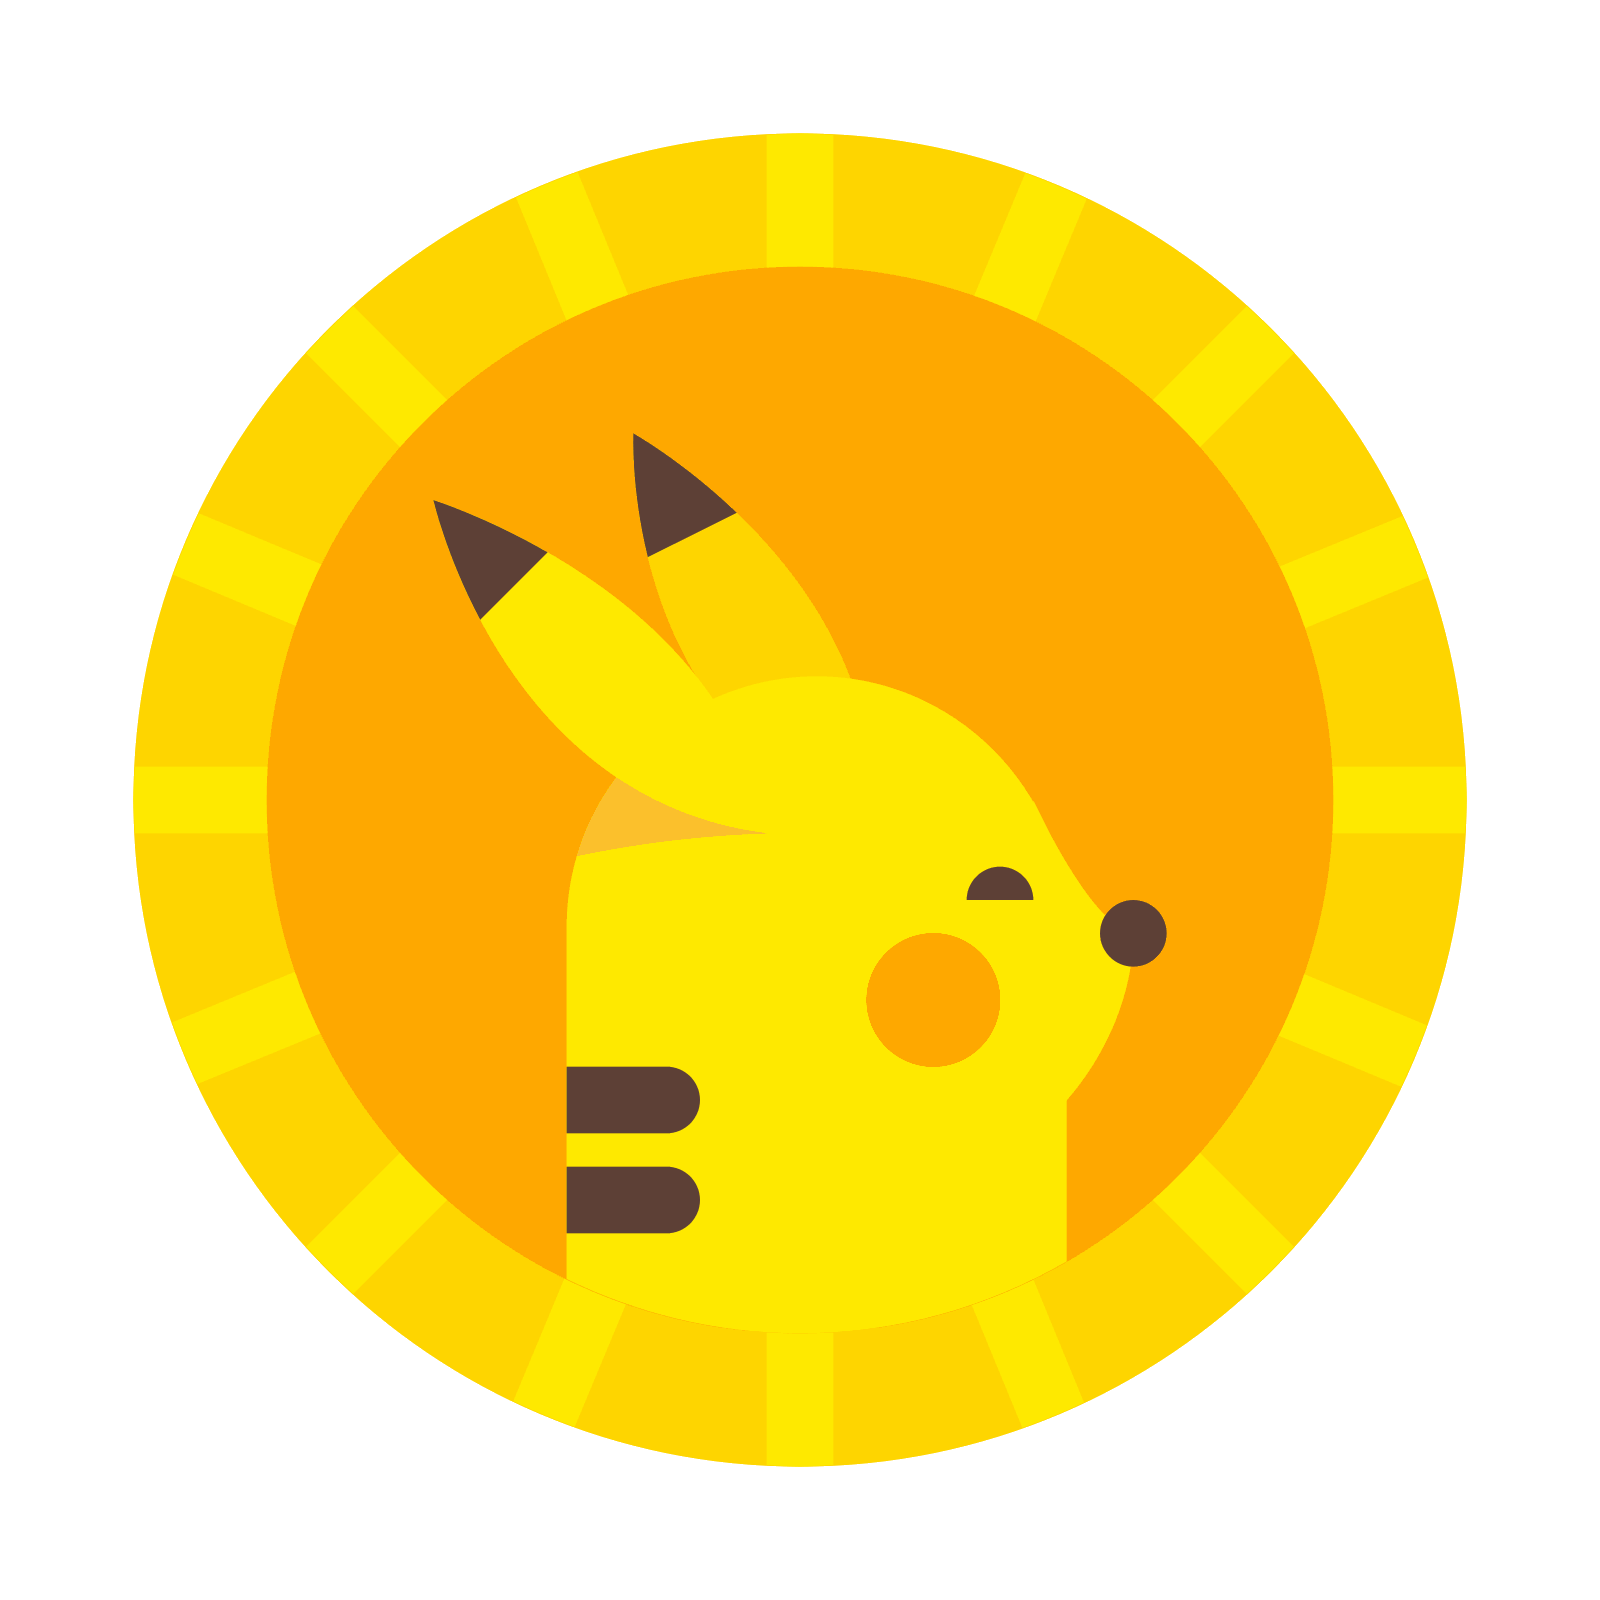 Pokecoin icon free download. Vector coin png image free